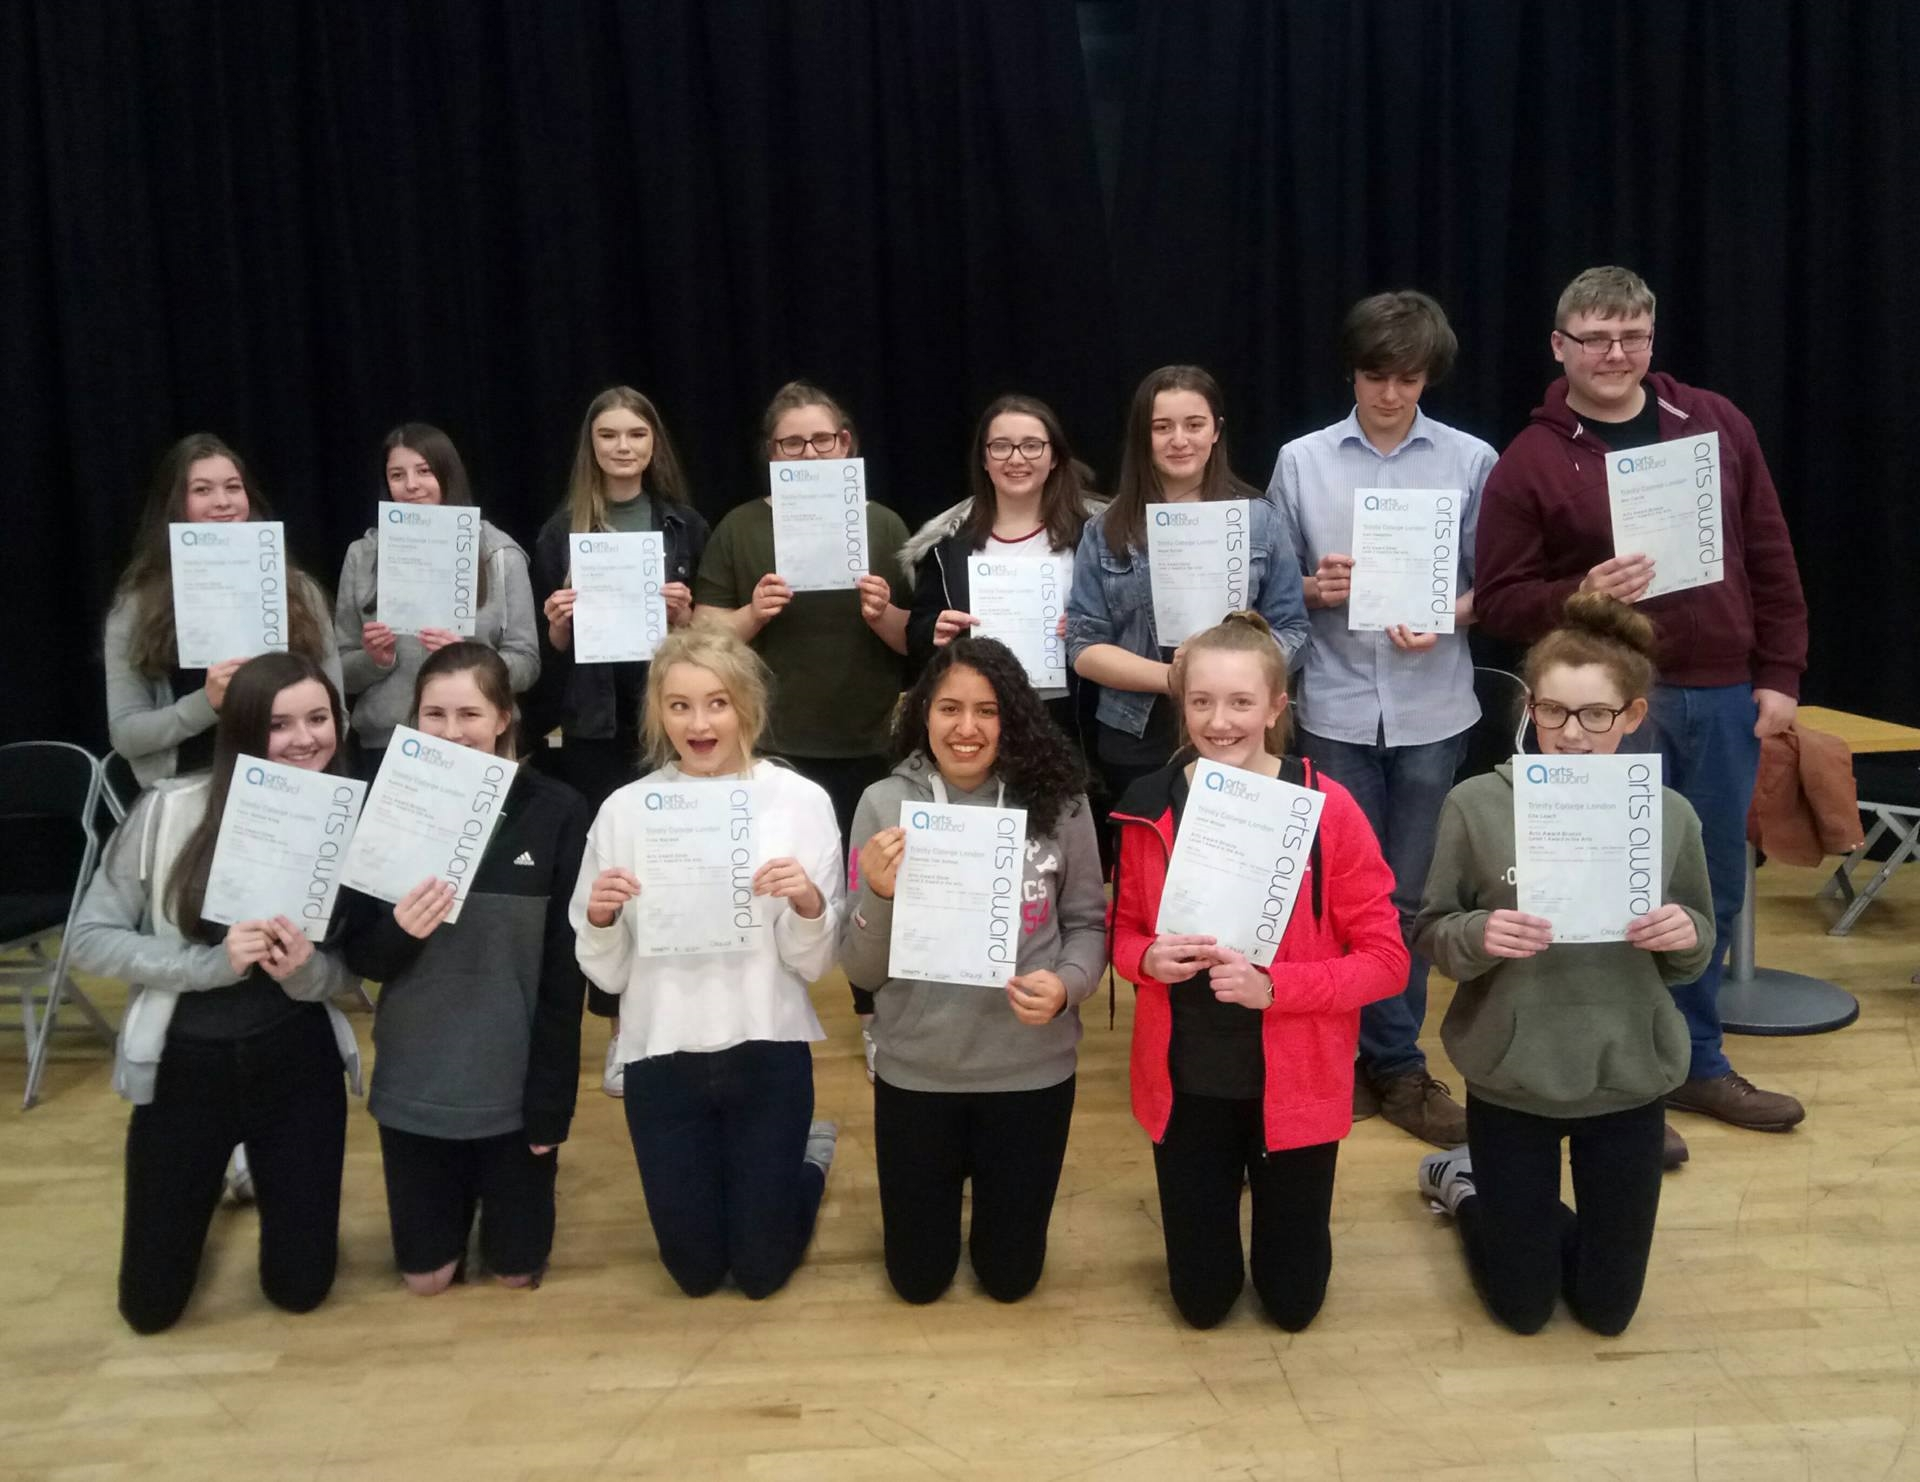 Express Arts receive Arts Award Certificates